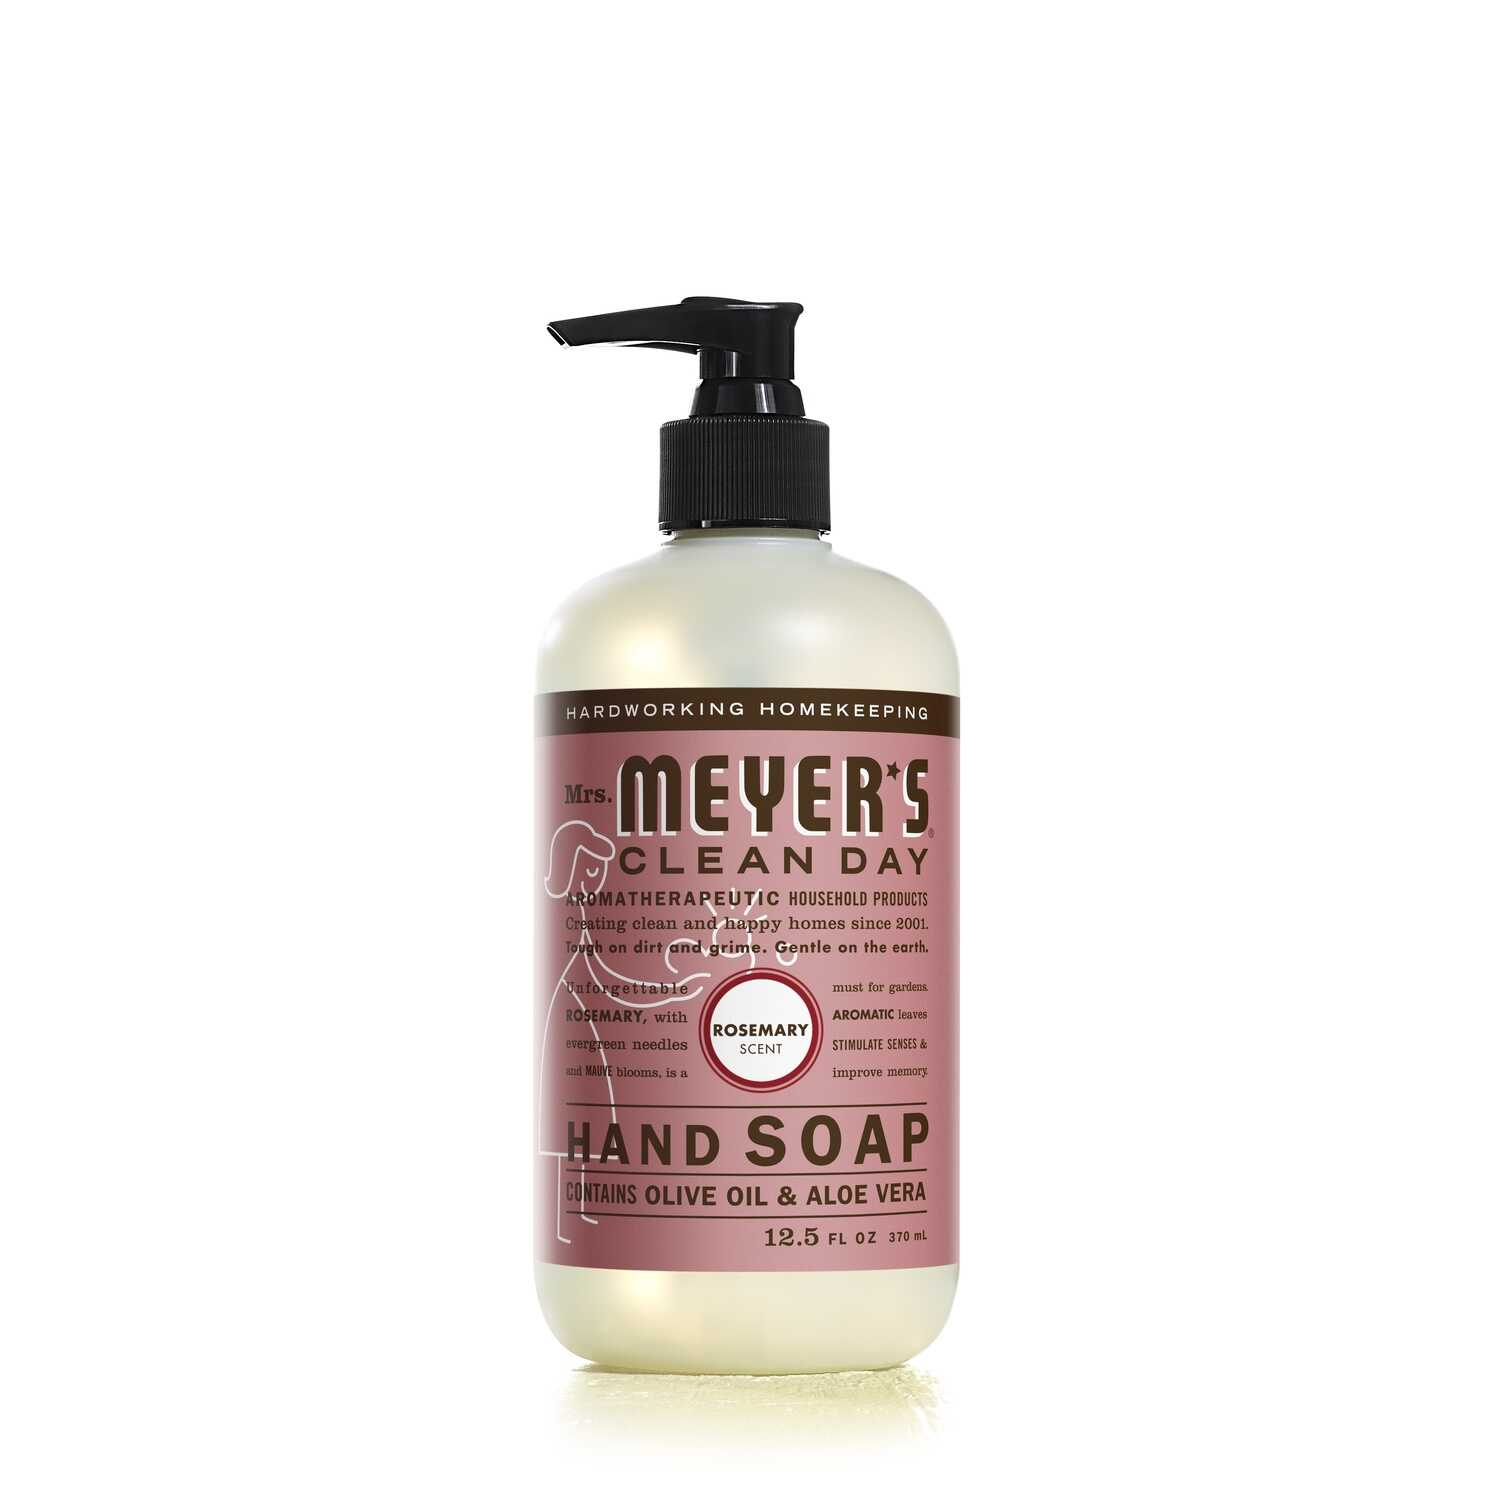 Mrs. Meyer's  Clean Day  Organic Rosemary Scent Liquid Hand Soap  12.5 oz.